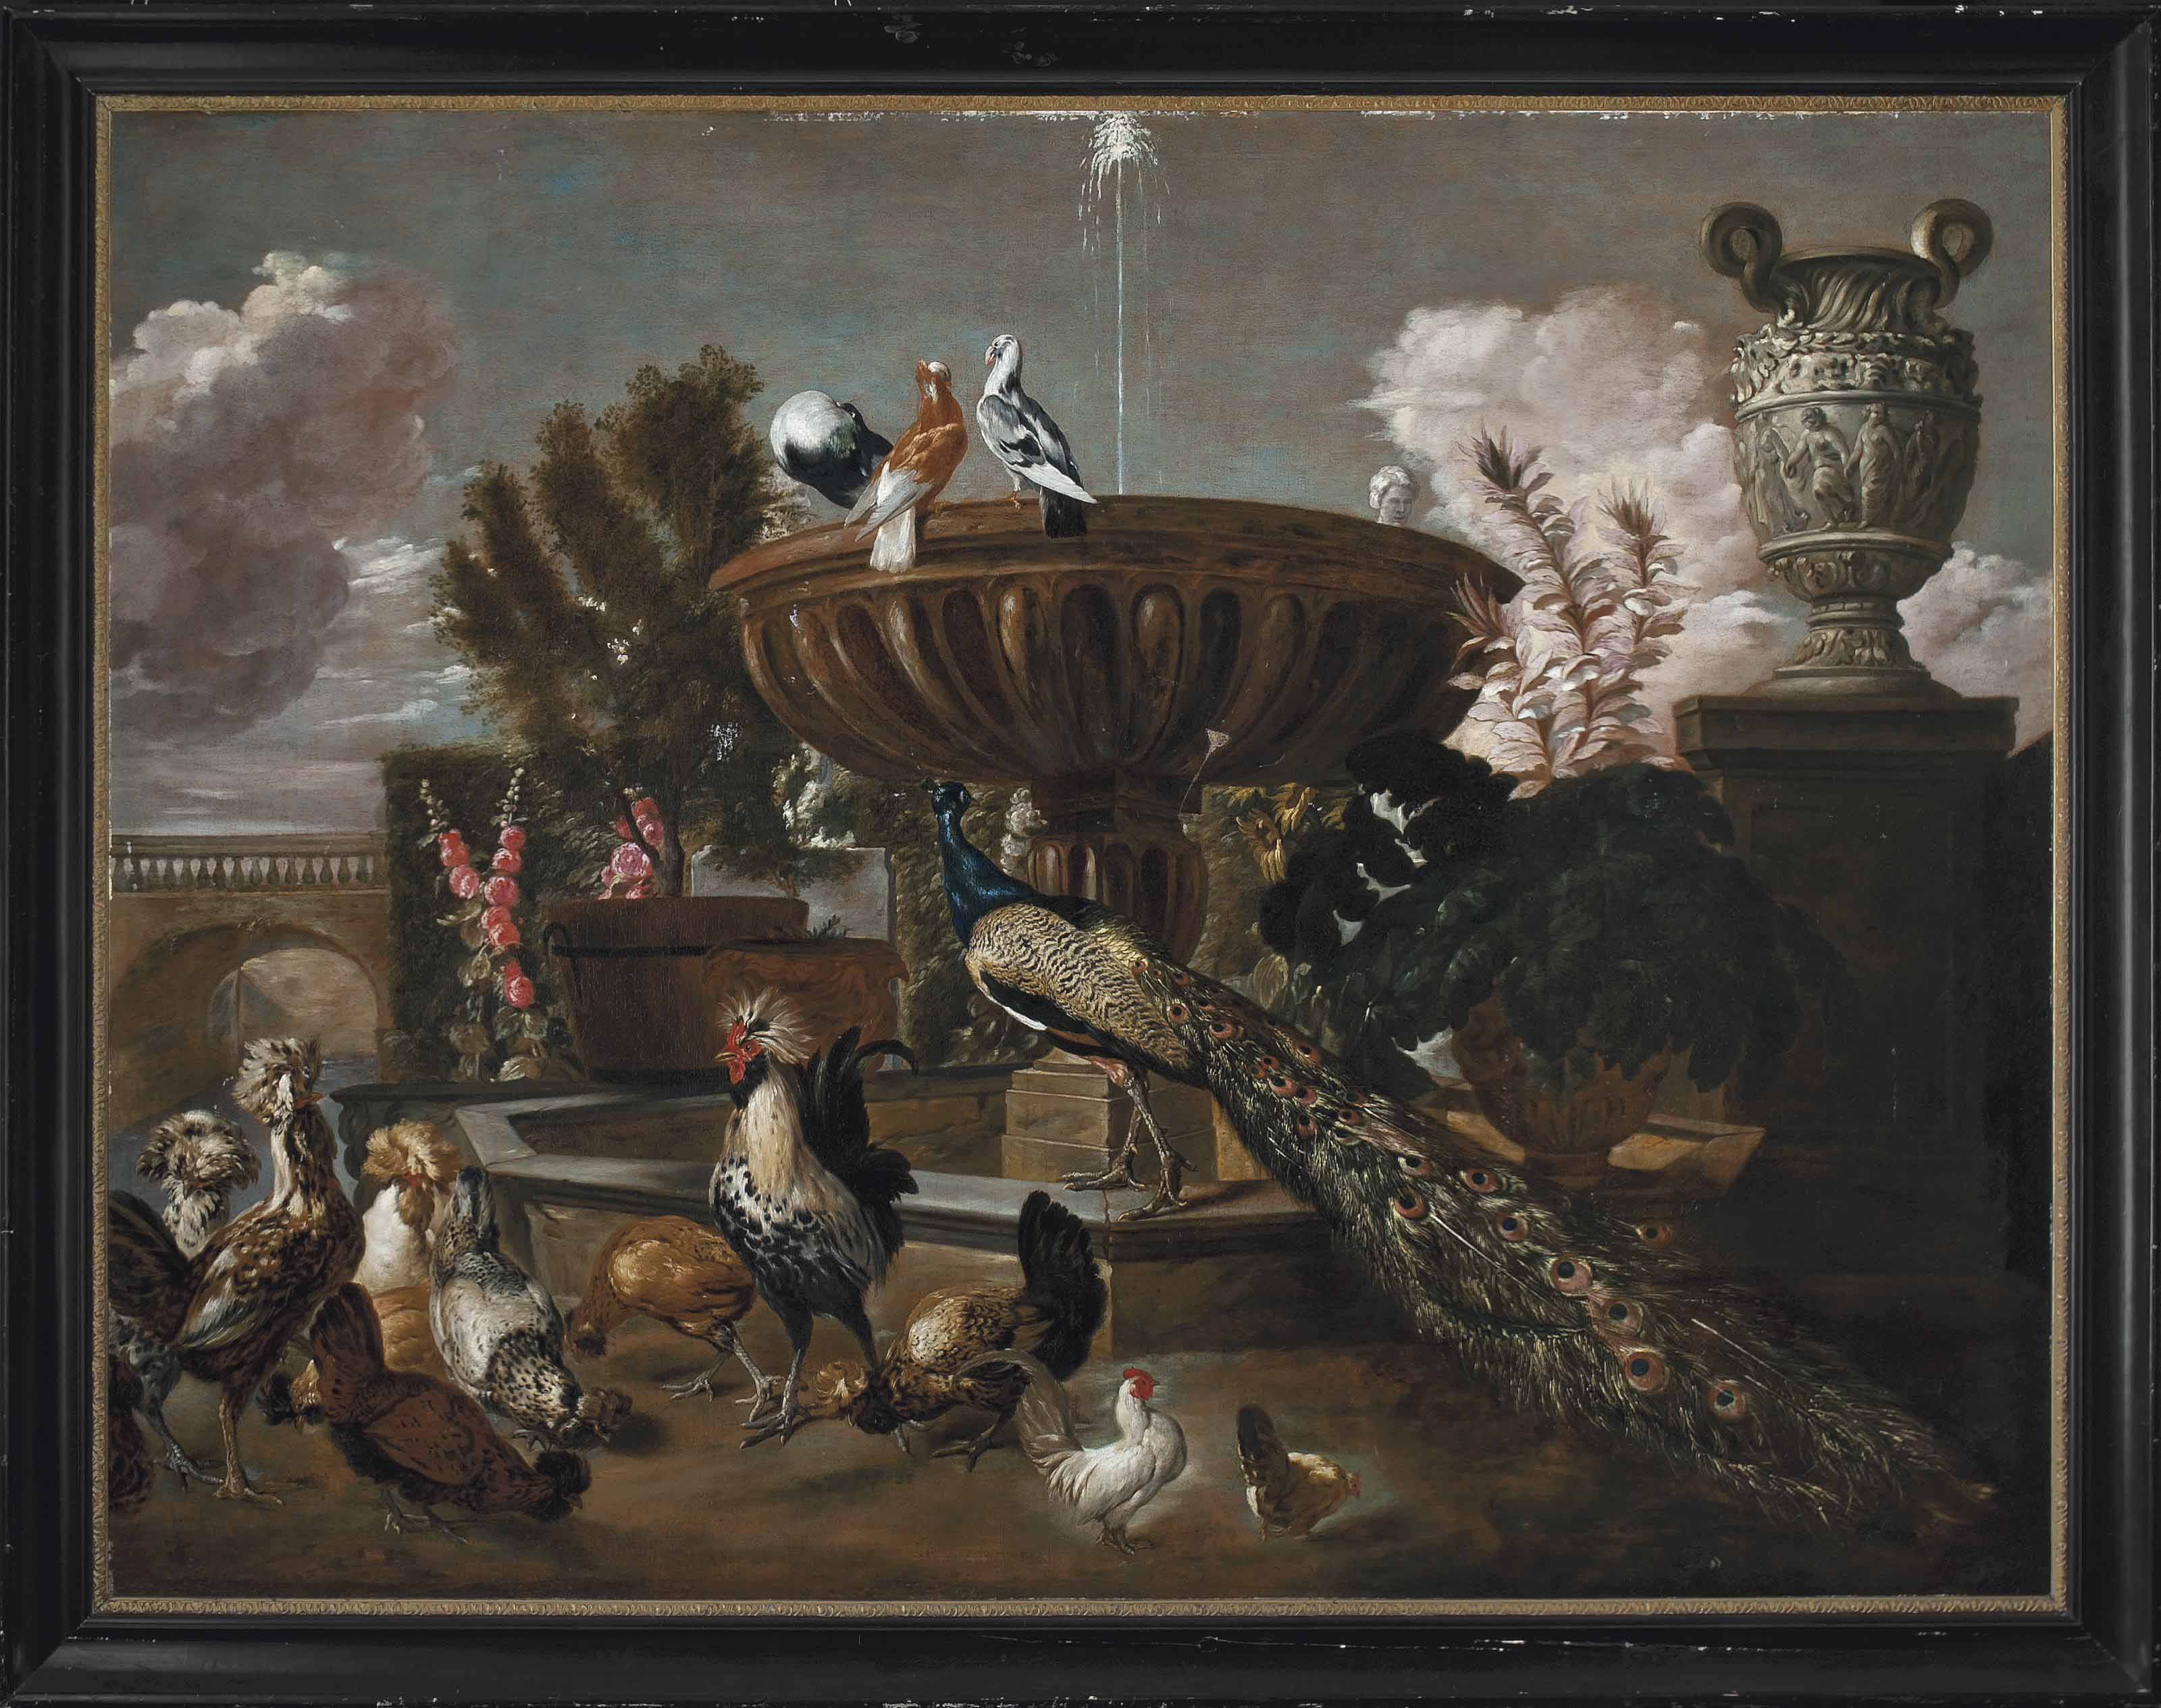 A peacock, cockerels, hens, turtle doves and other birds by a fountain in an ornamental garden